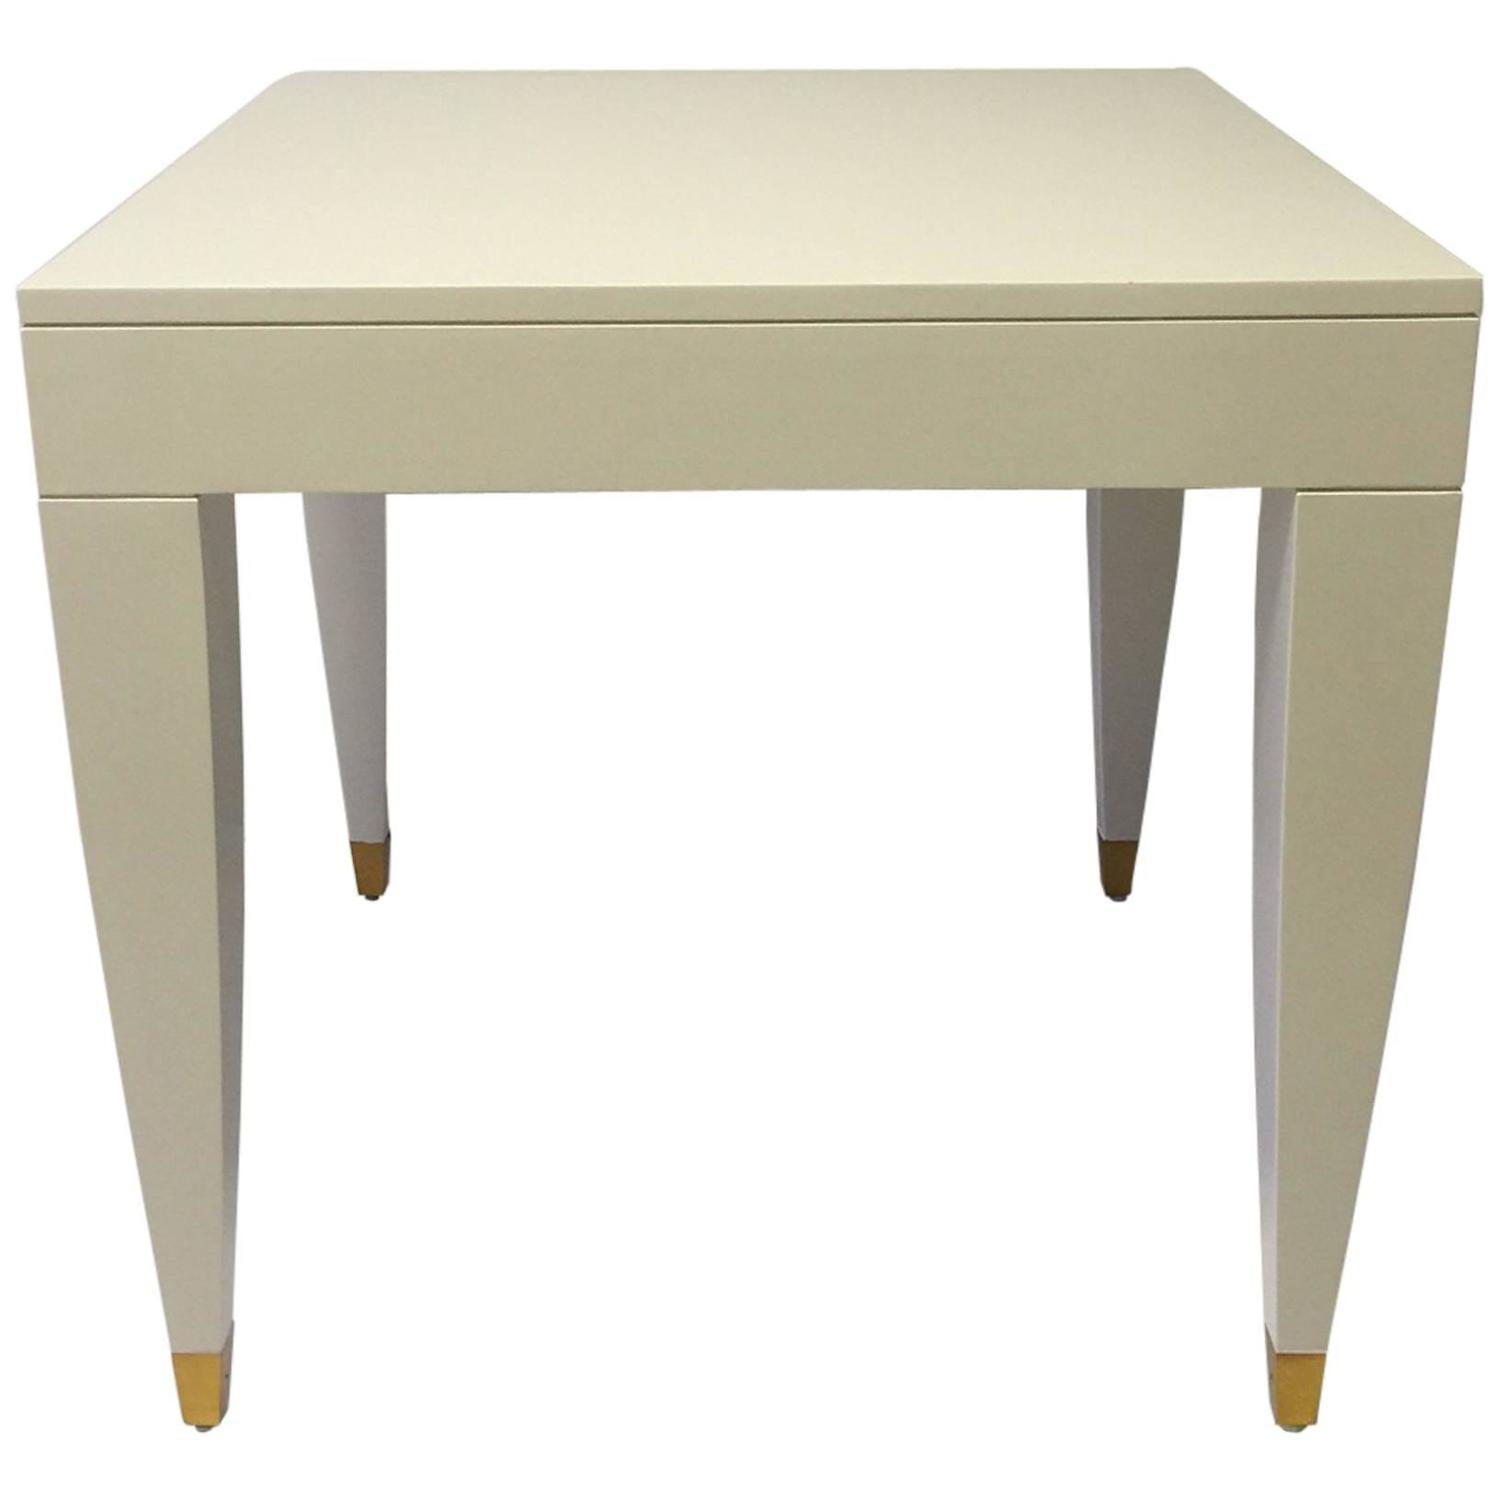 Mid century modern white lacquered side table at 1stdibs for White side table